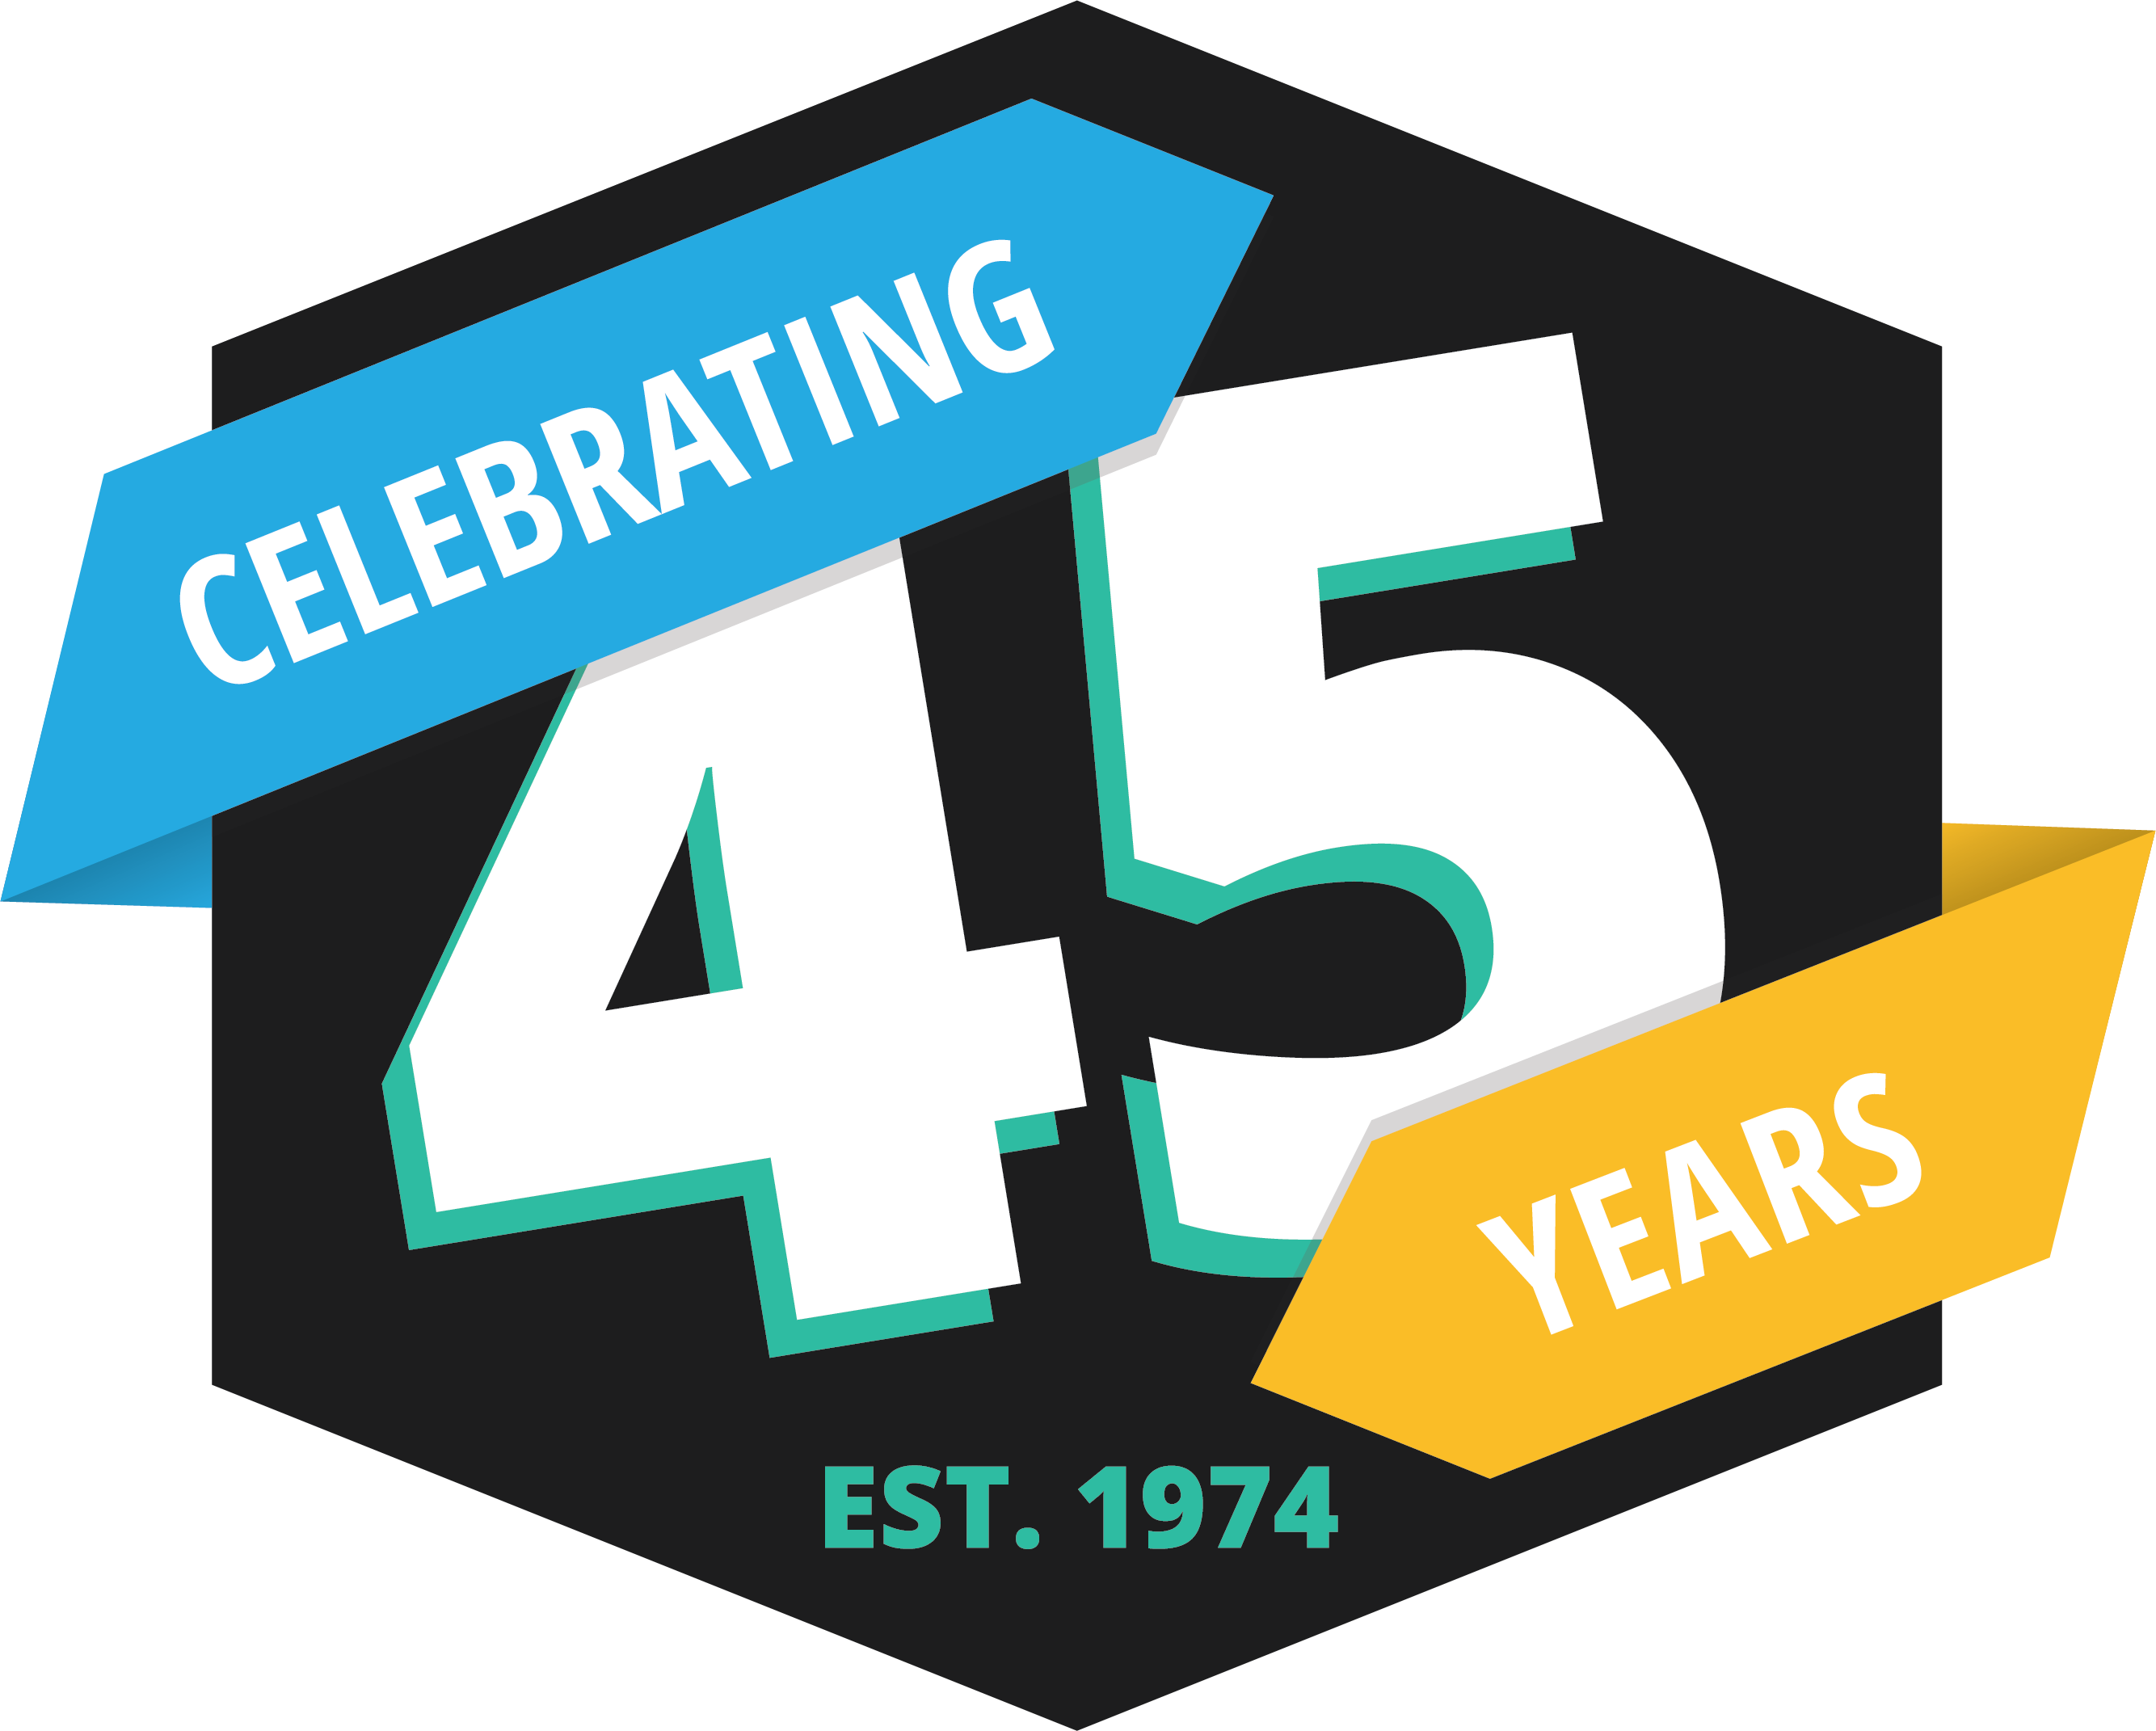 Michael Williams Engineering Ltd - Celebrating 45 Years